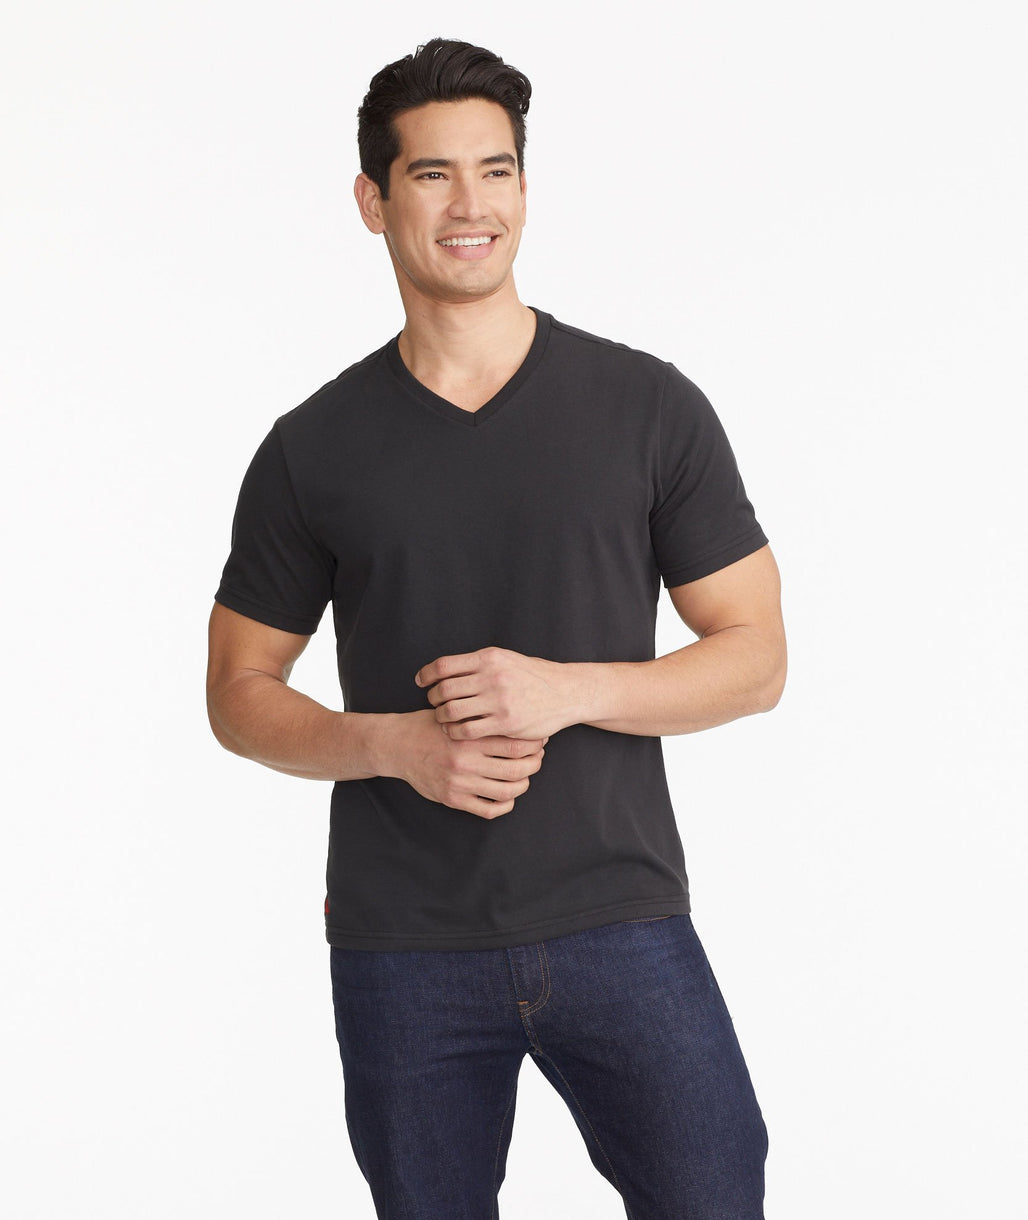 Model wearing a Black The Ultrasoft V-Neck Tee